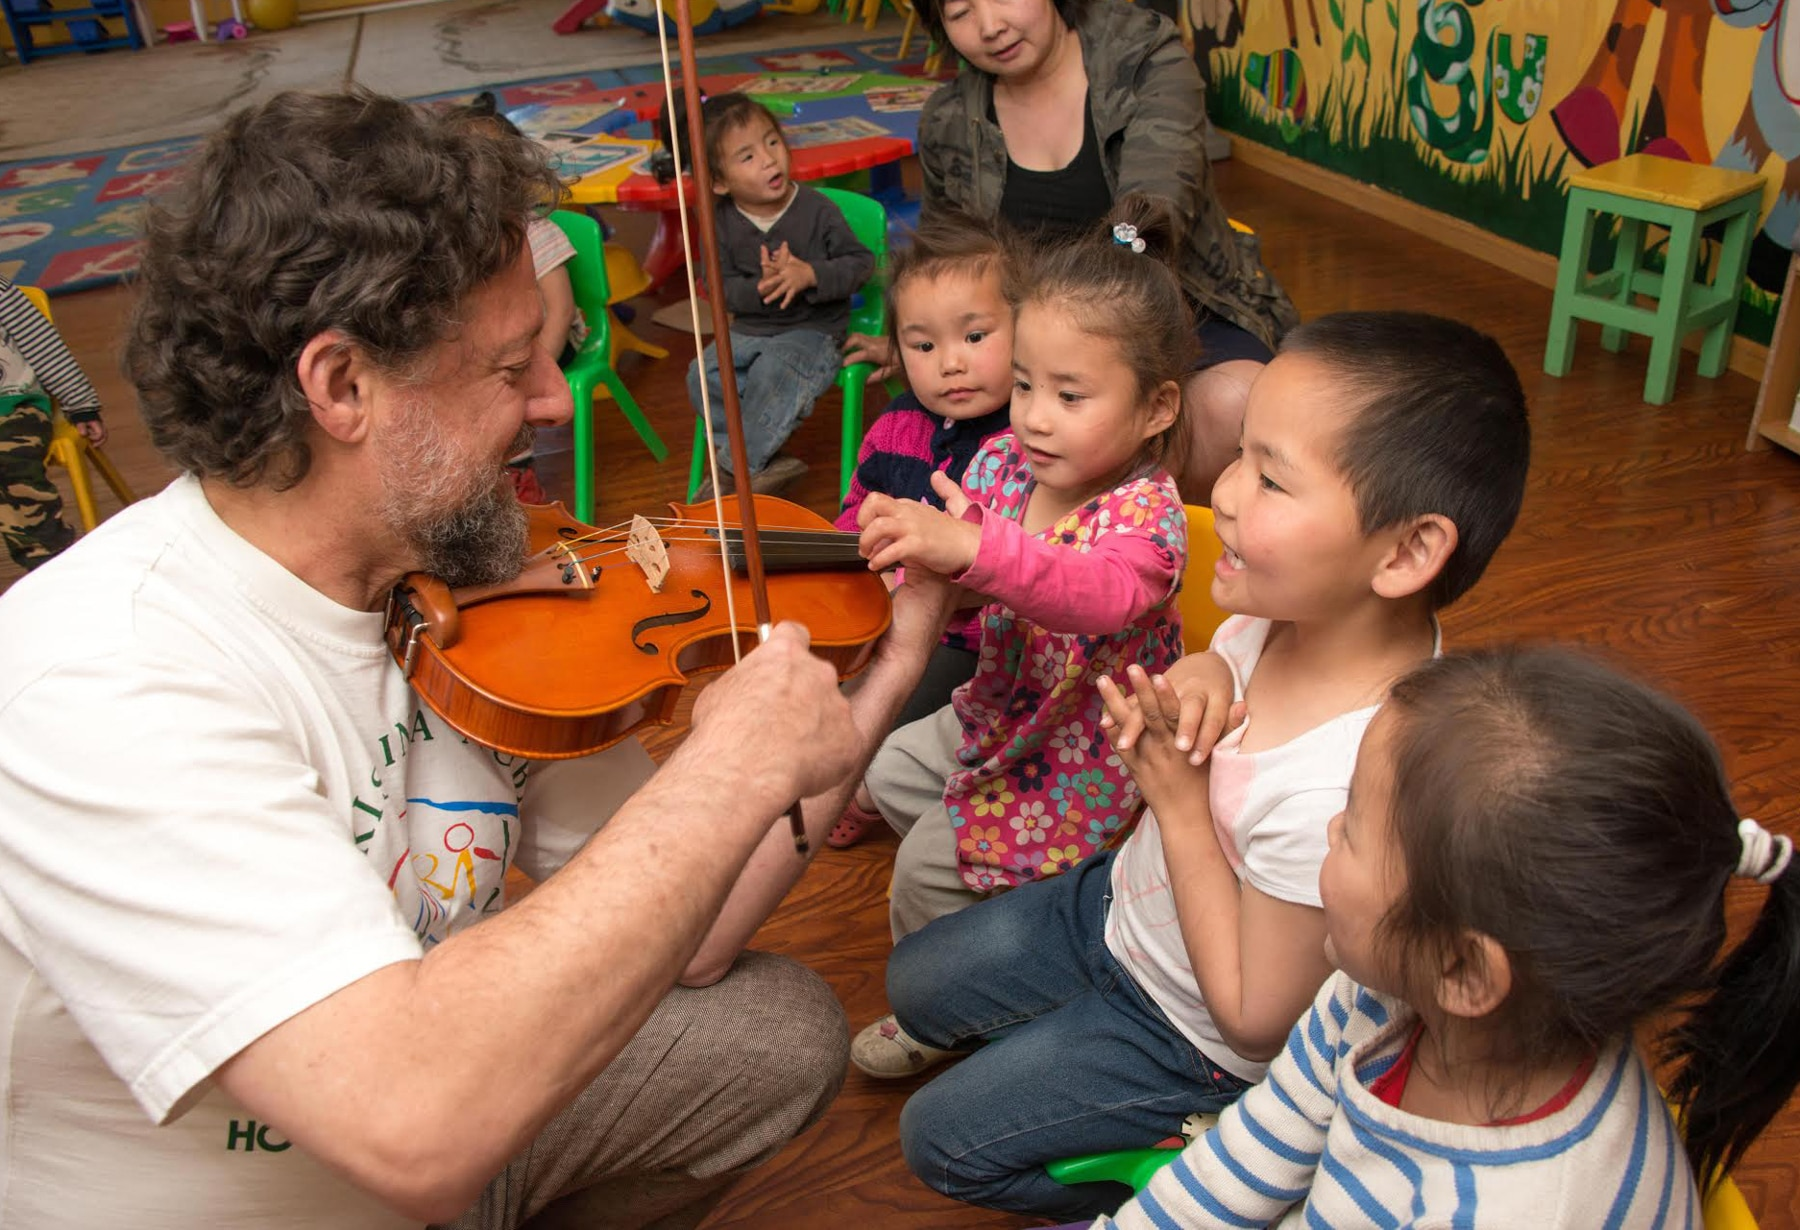 Violinist showing orphans his instrument (Jan Regan/Philadelphia Orchestra)